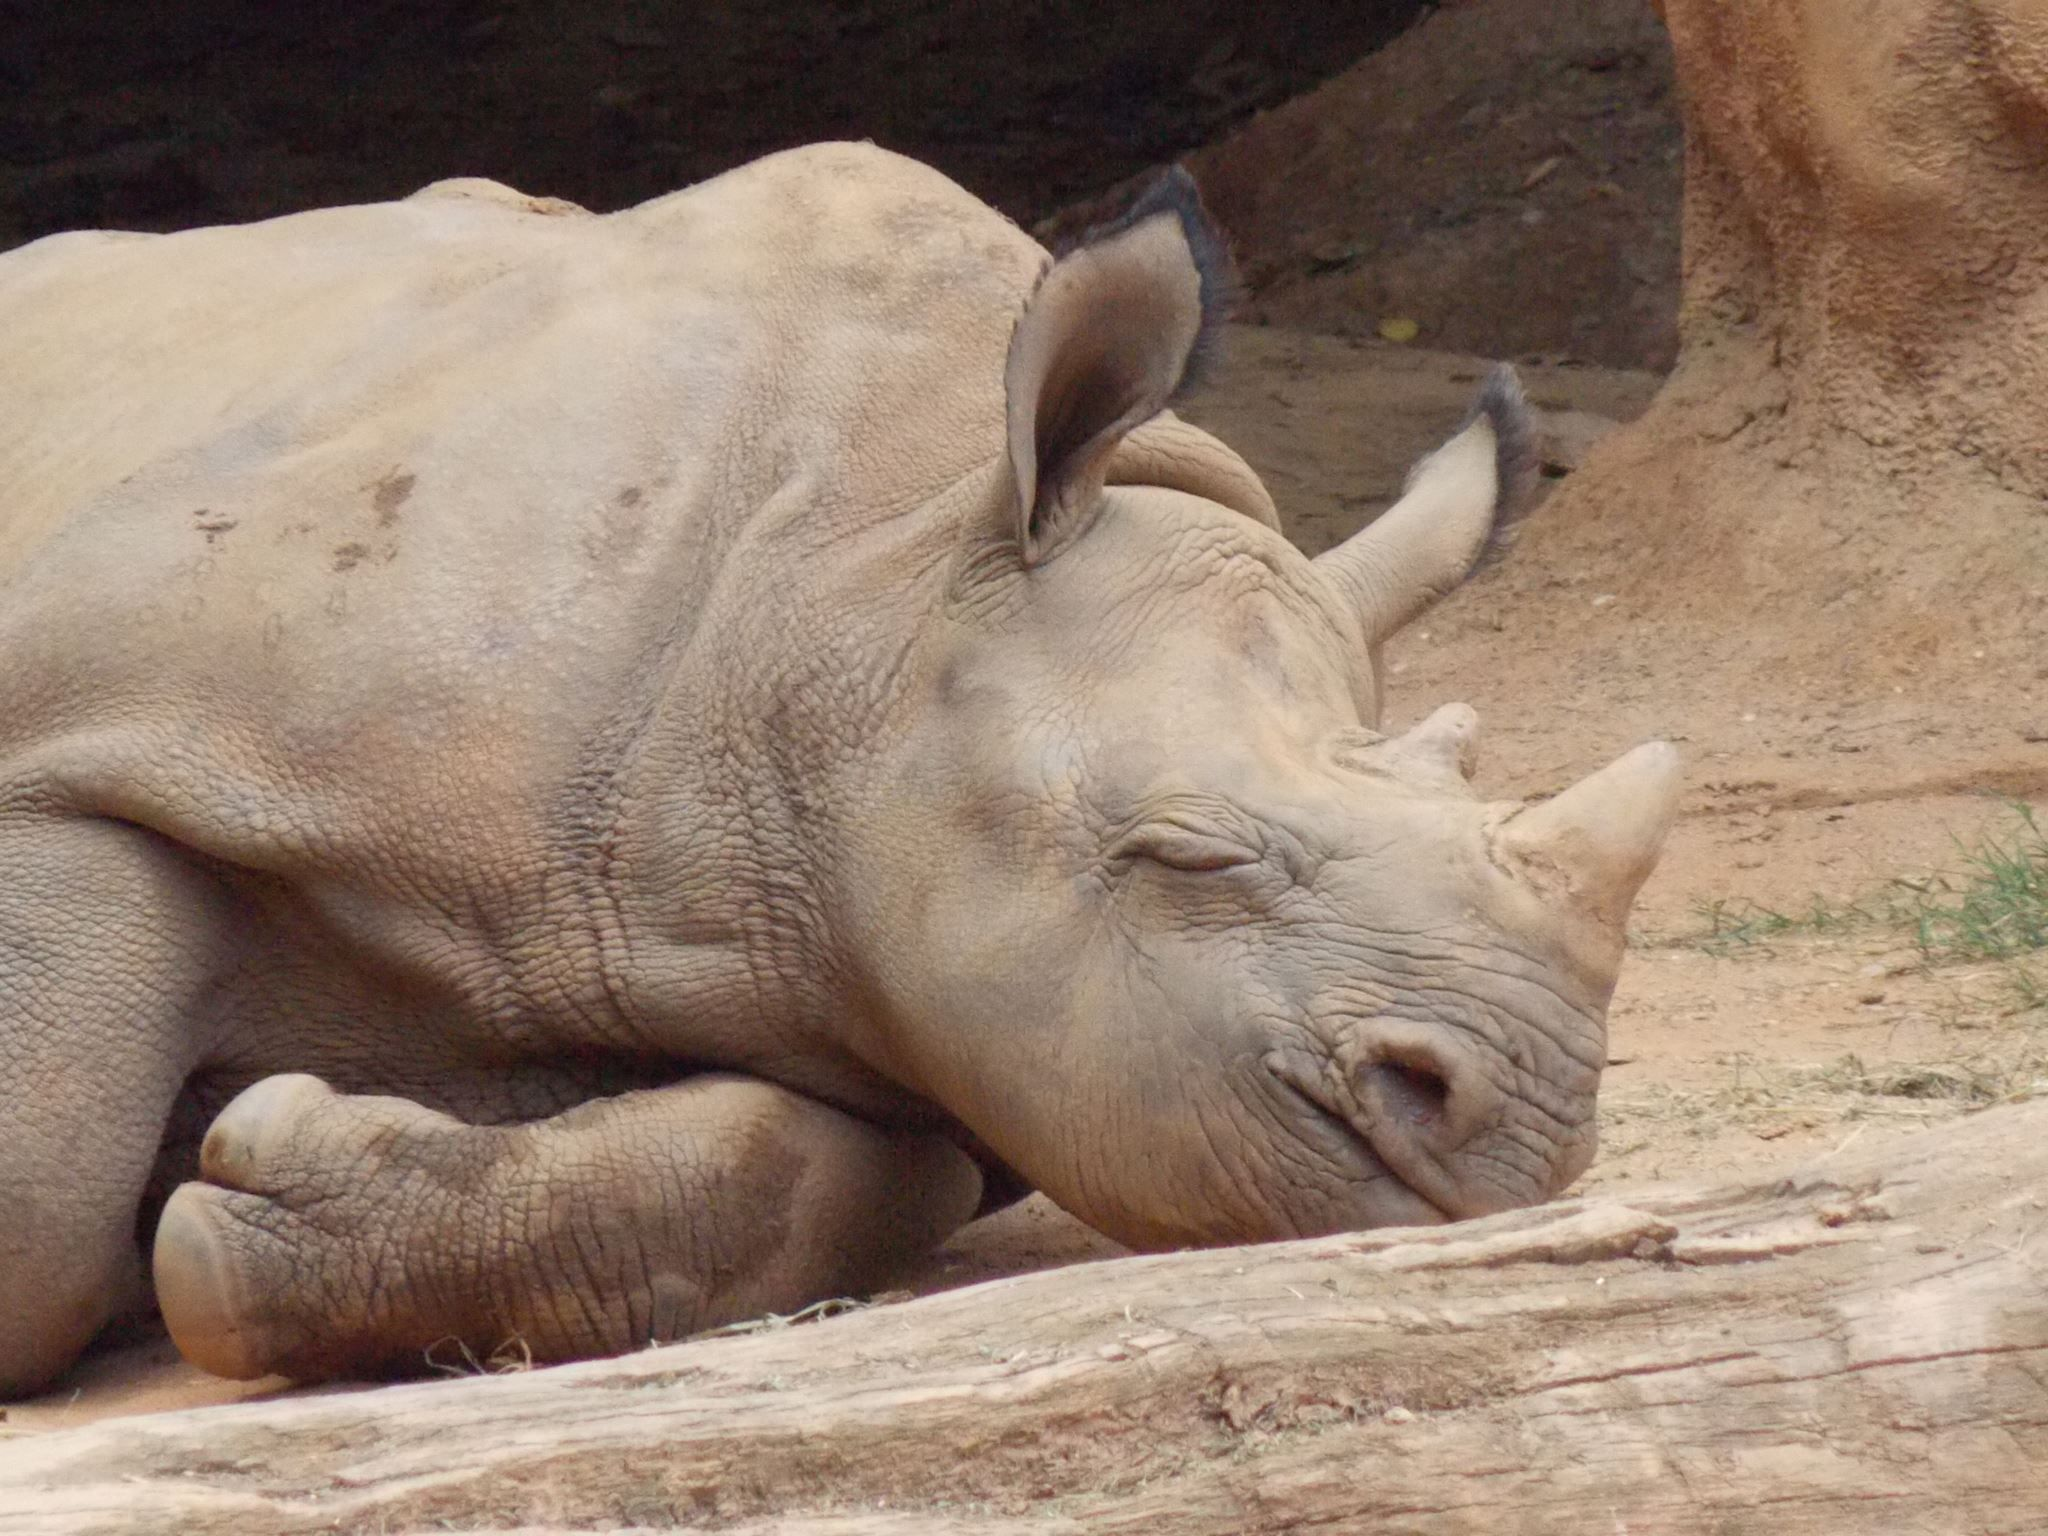 #ZAFanFriday pic of the week is from Facebook user Gail L. who captured this cute photo of Jabari. What do you think he's dreaming about?